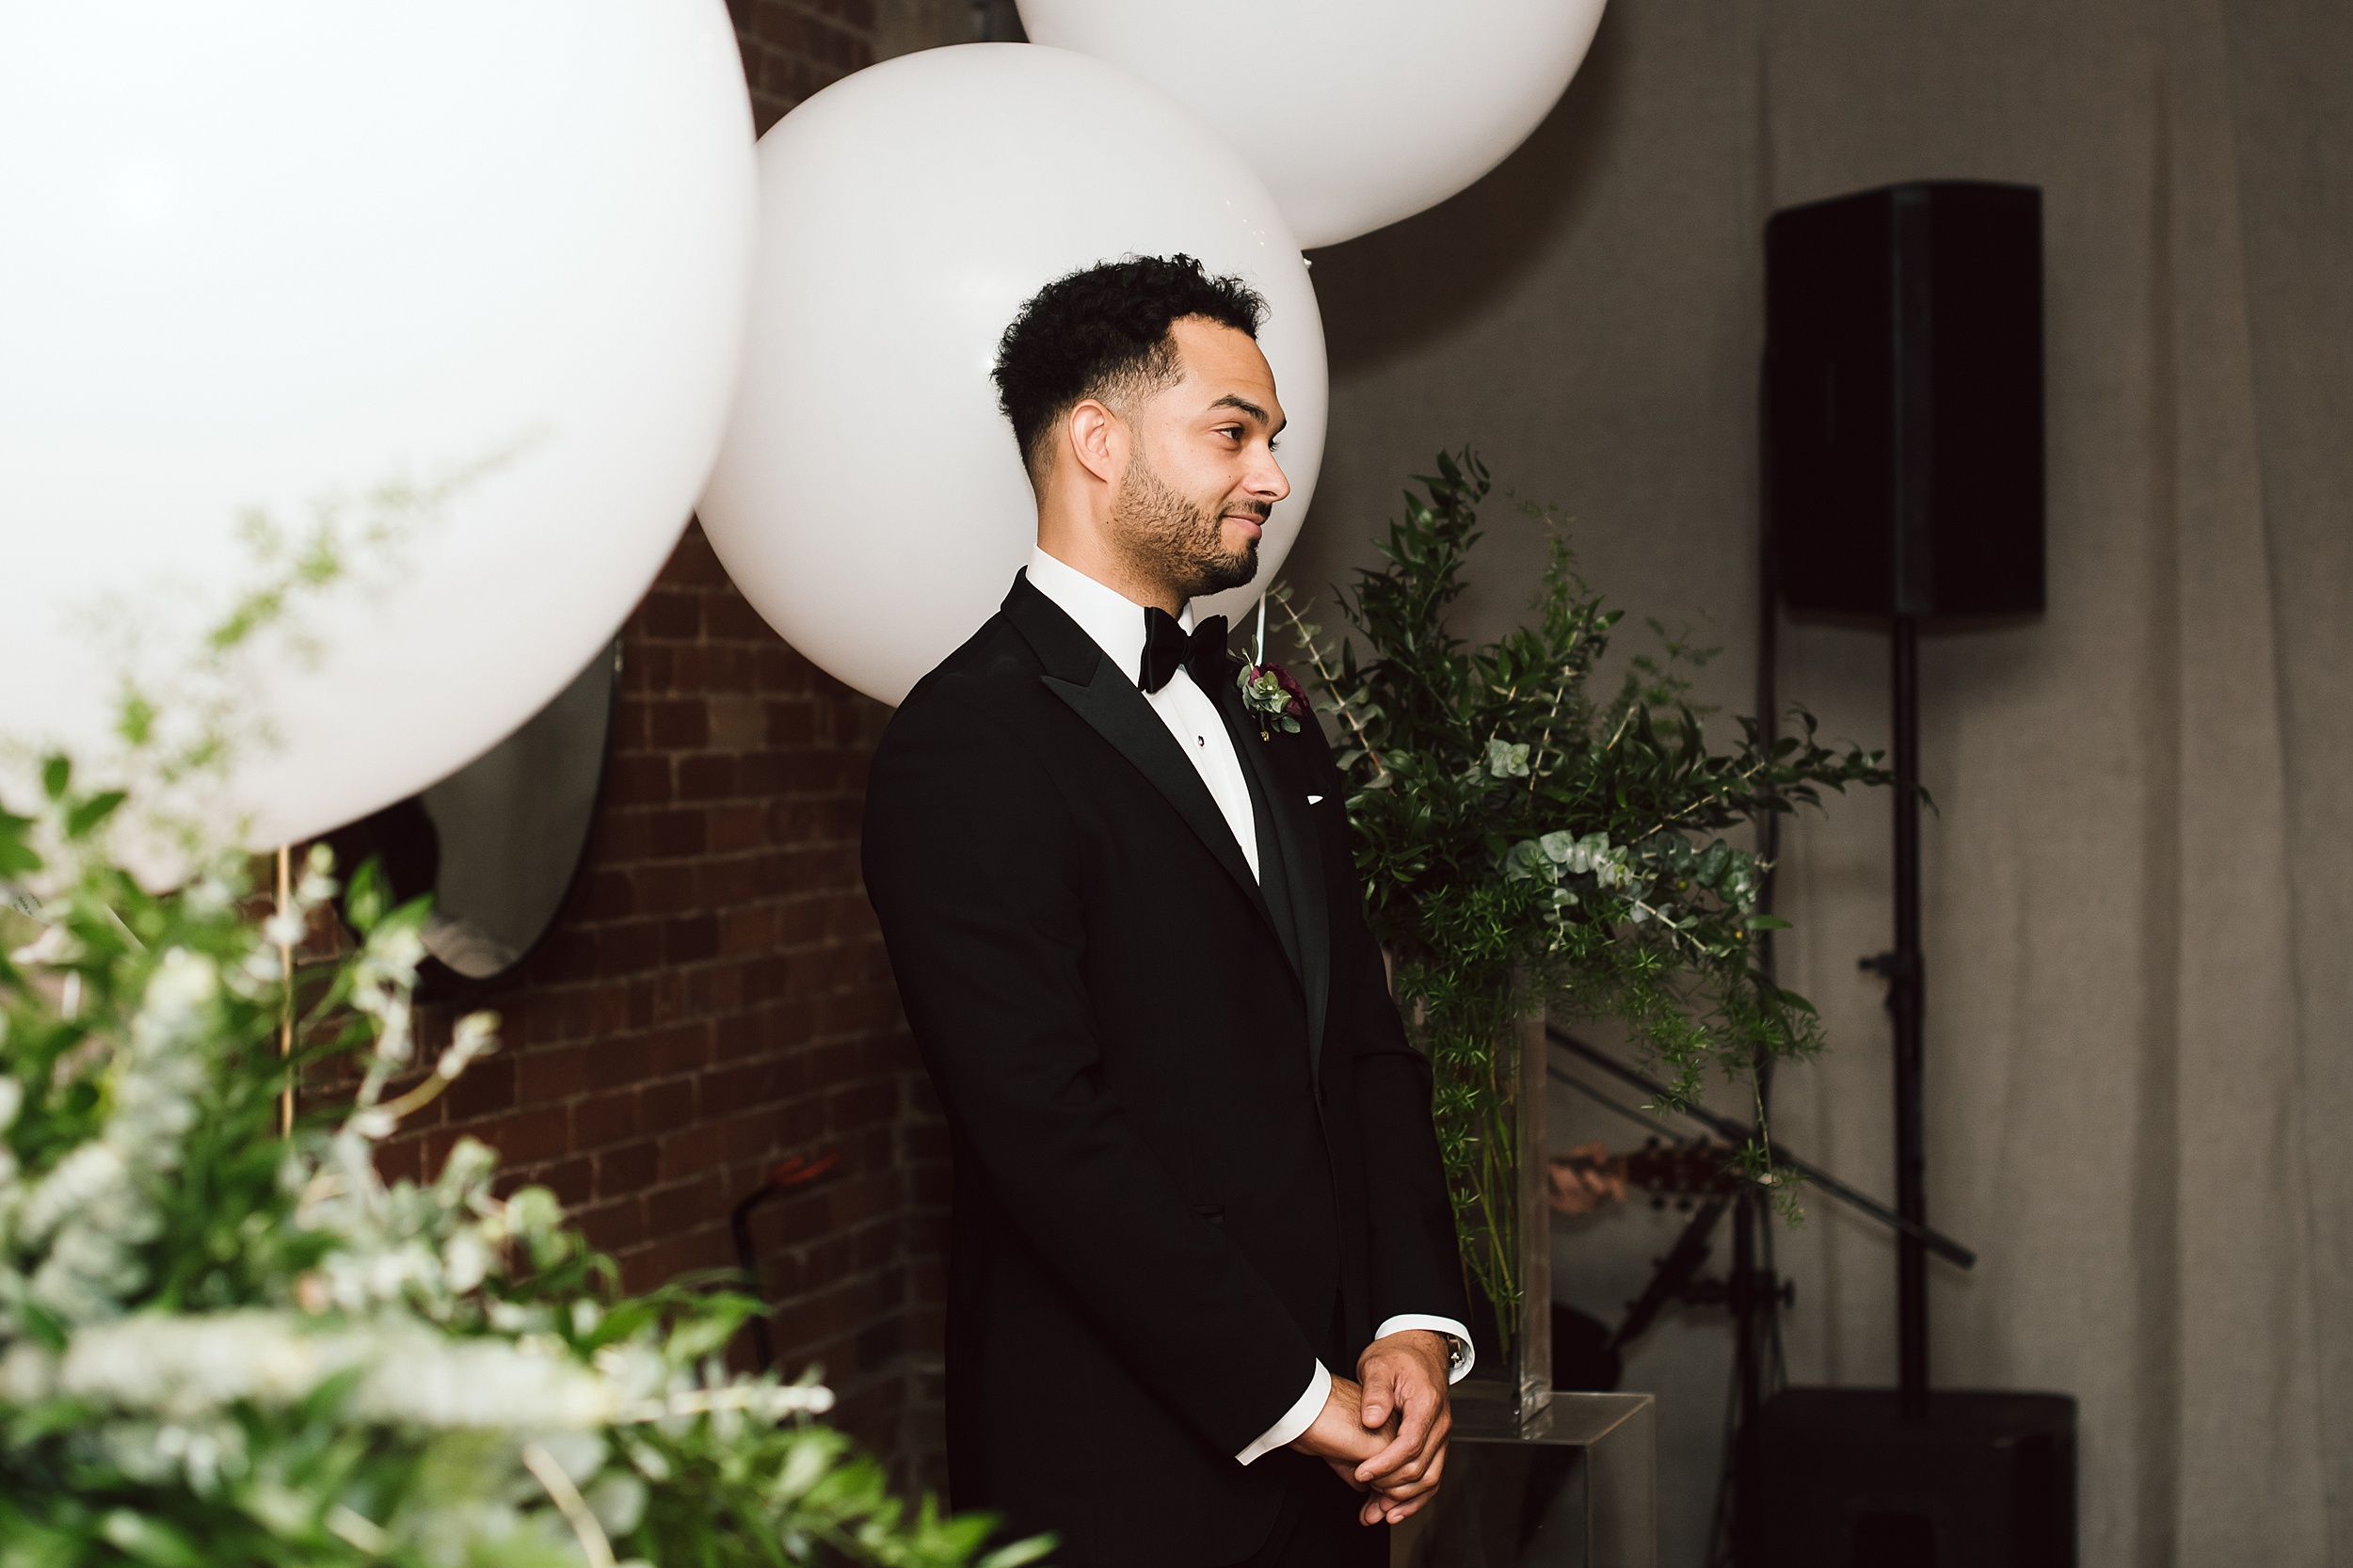 Broadview_Hotel_Wedding_Toronto_Photographer_0018.jpg